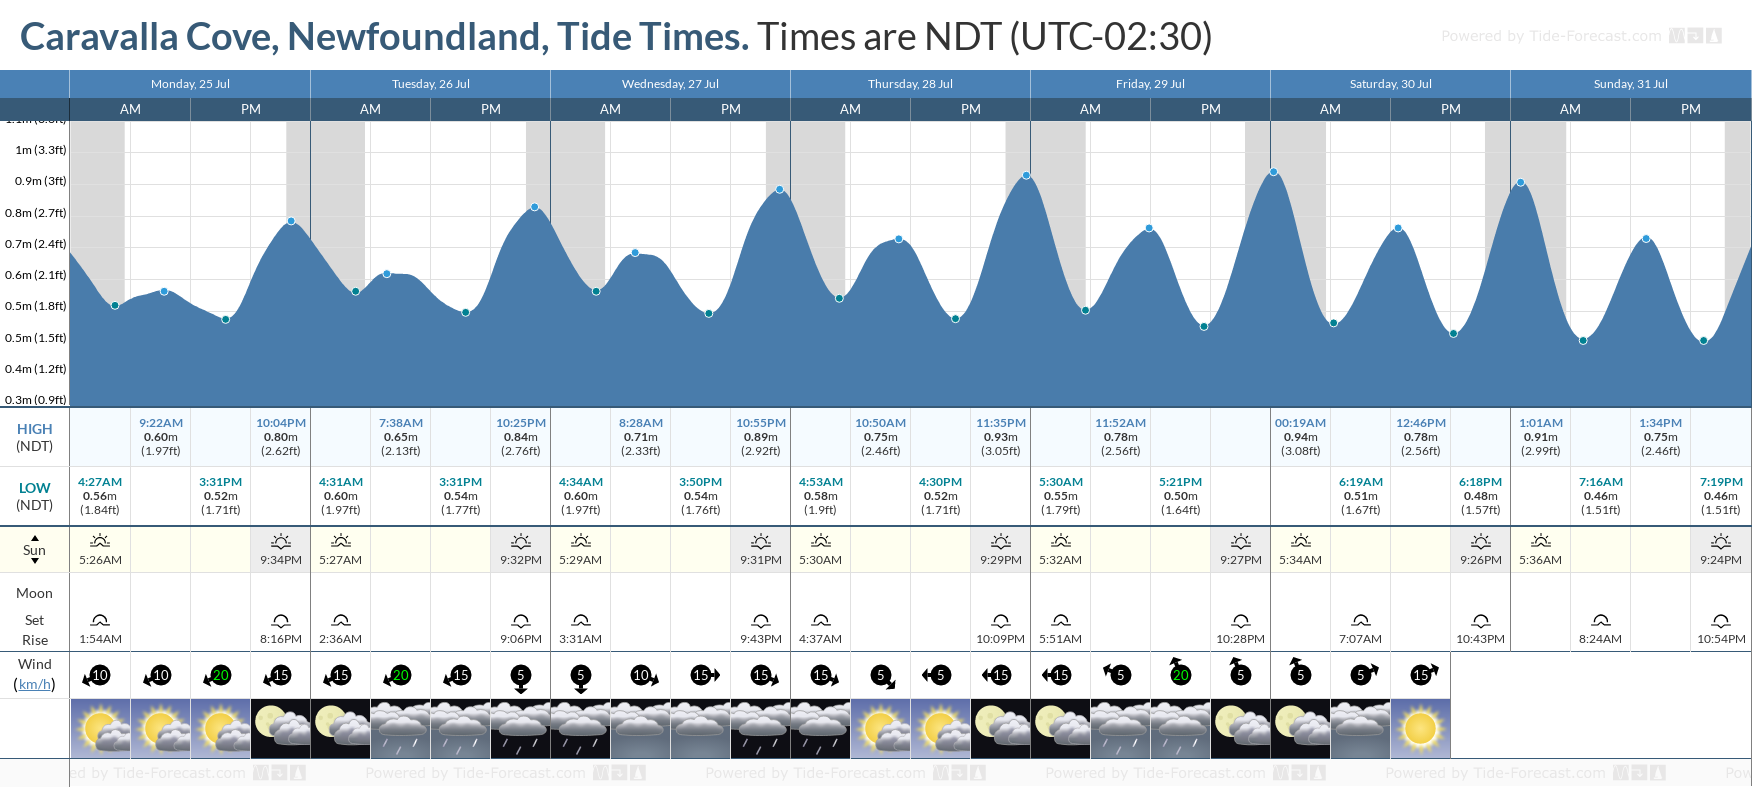 Caravalla Cove, Newfoundland Tide Chart including high and low tide tide times for the next 7 days